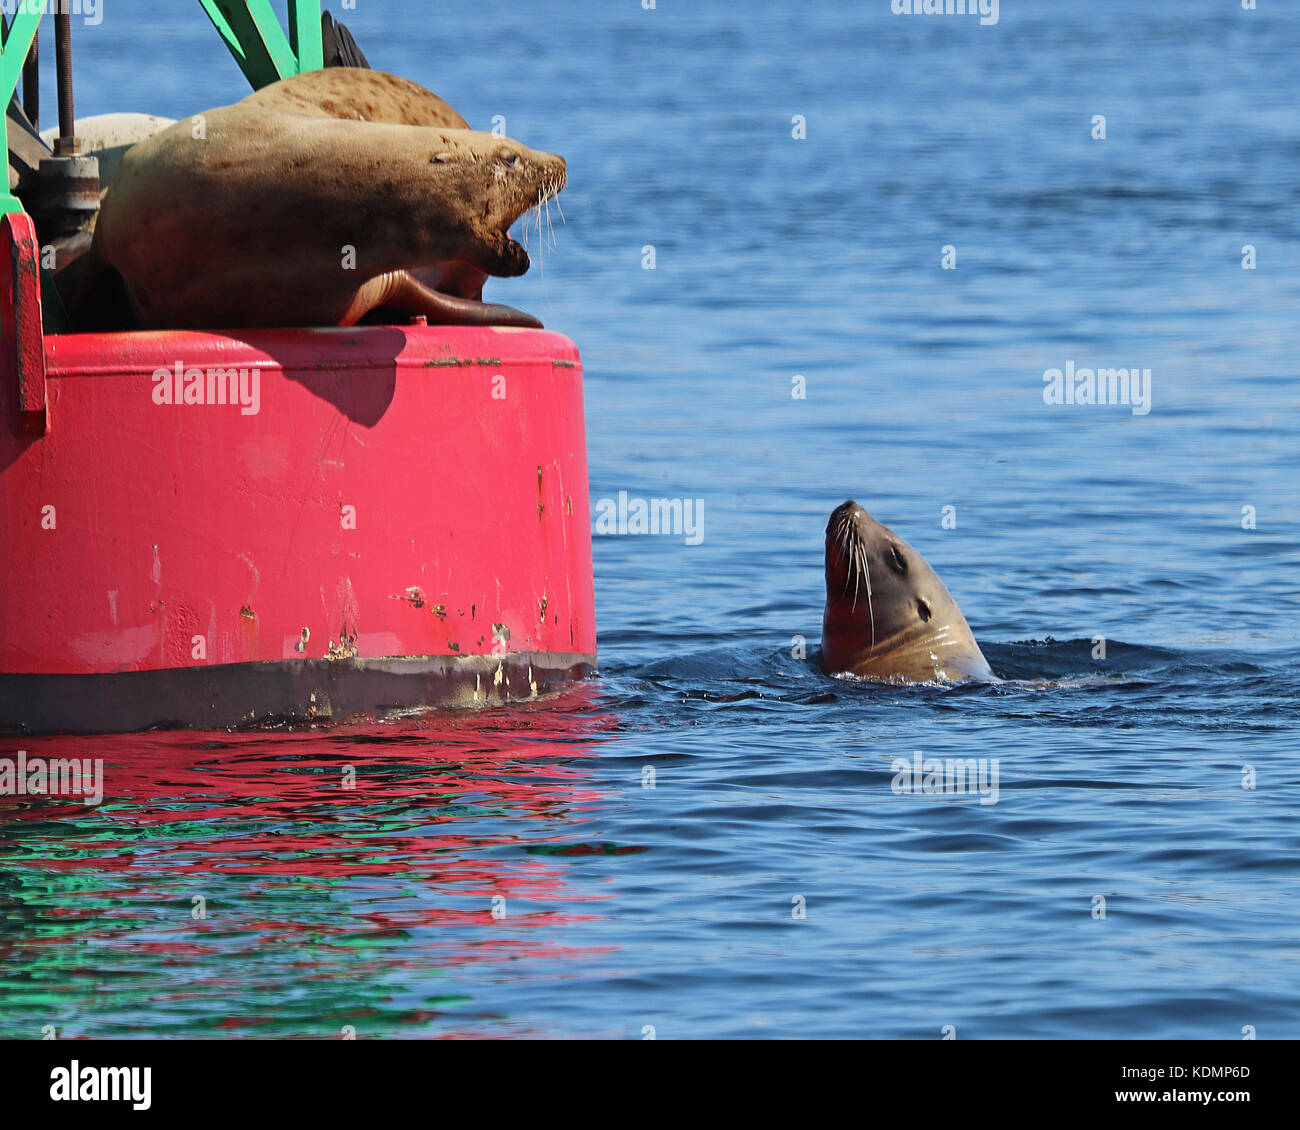 Stellar Sea lions arguing over who gets to rest on a large ocean buoy - Stock Image